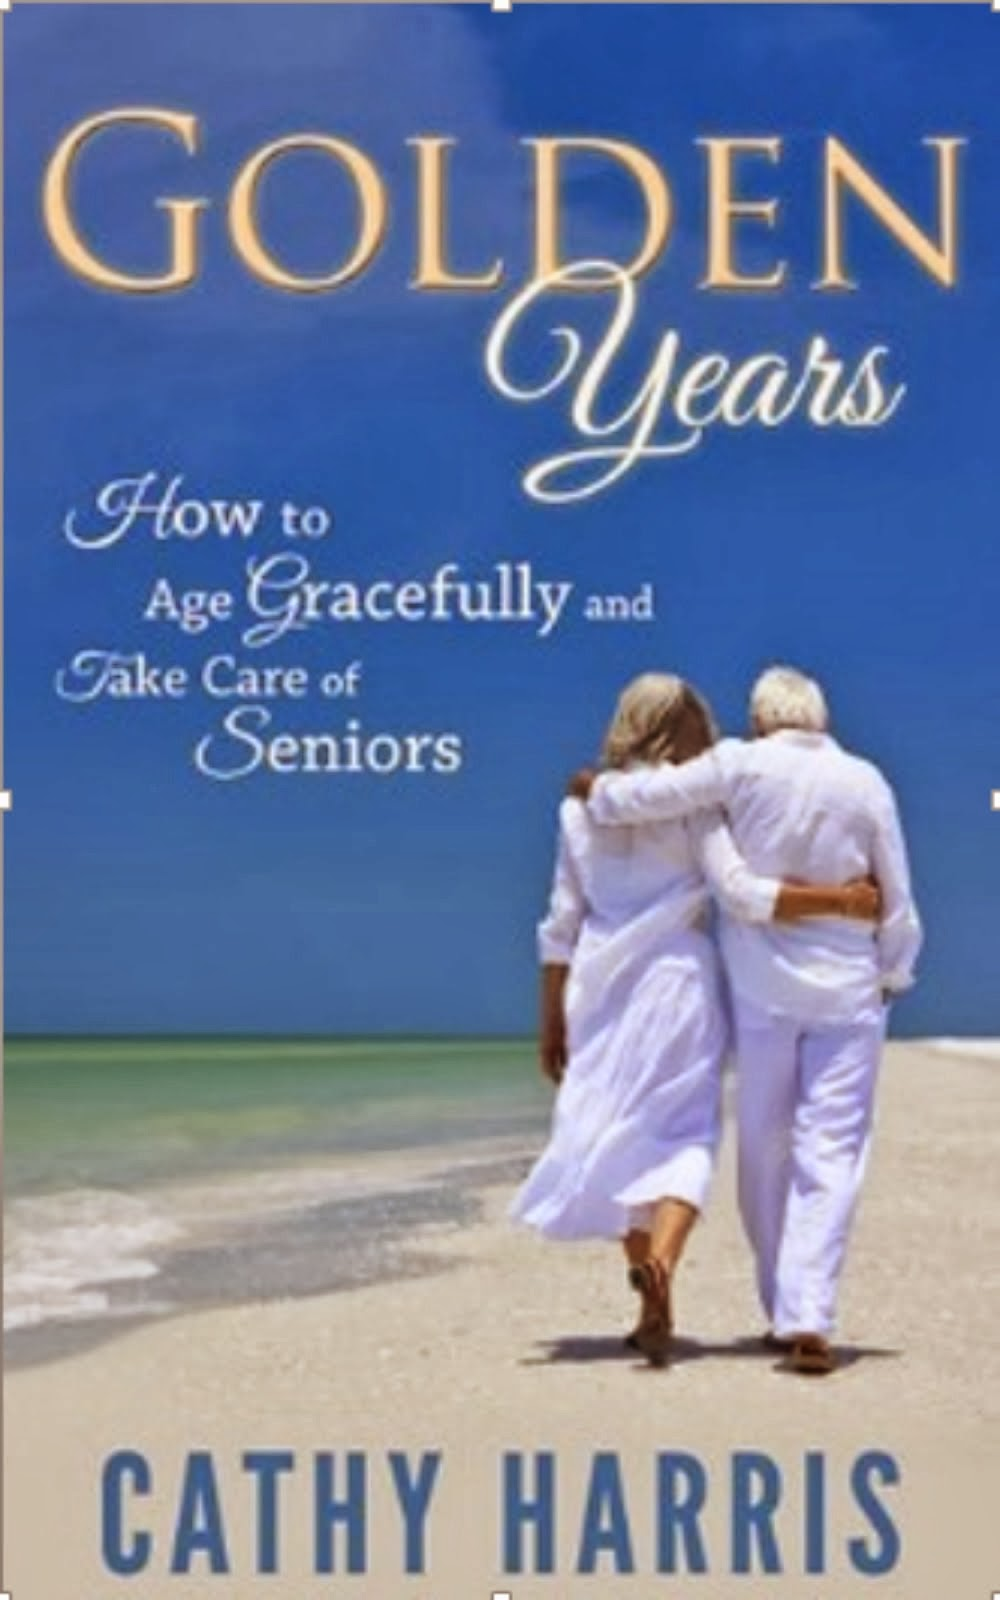 Golden Years: How To Age Gracefully and Take Care of Seniors